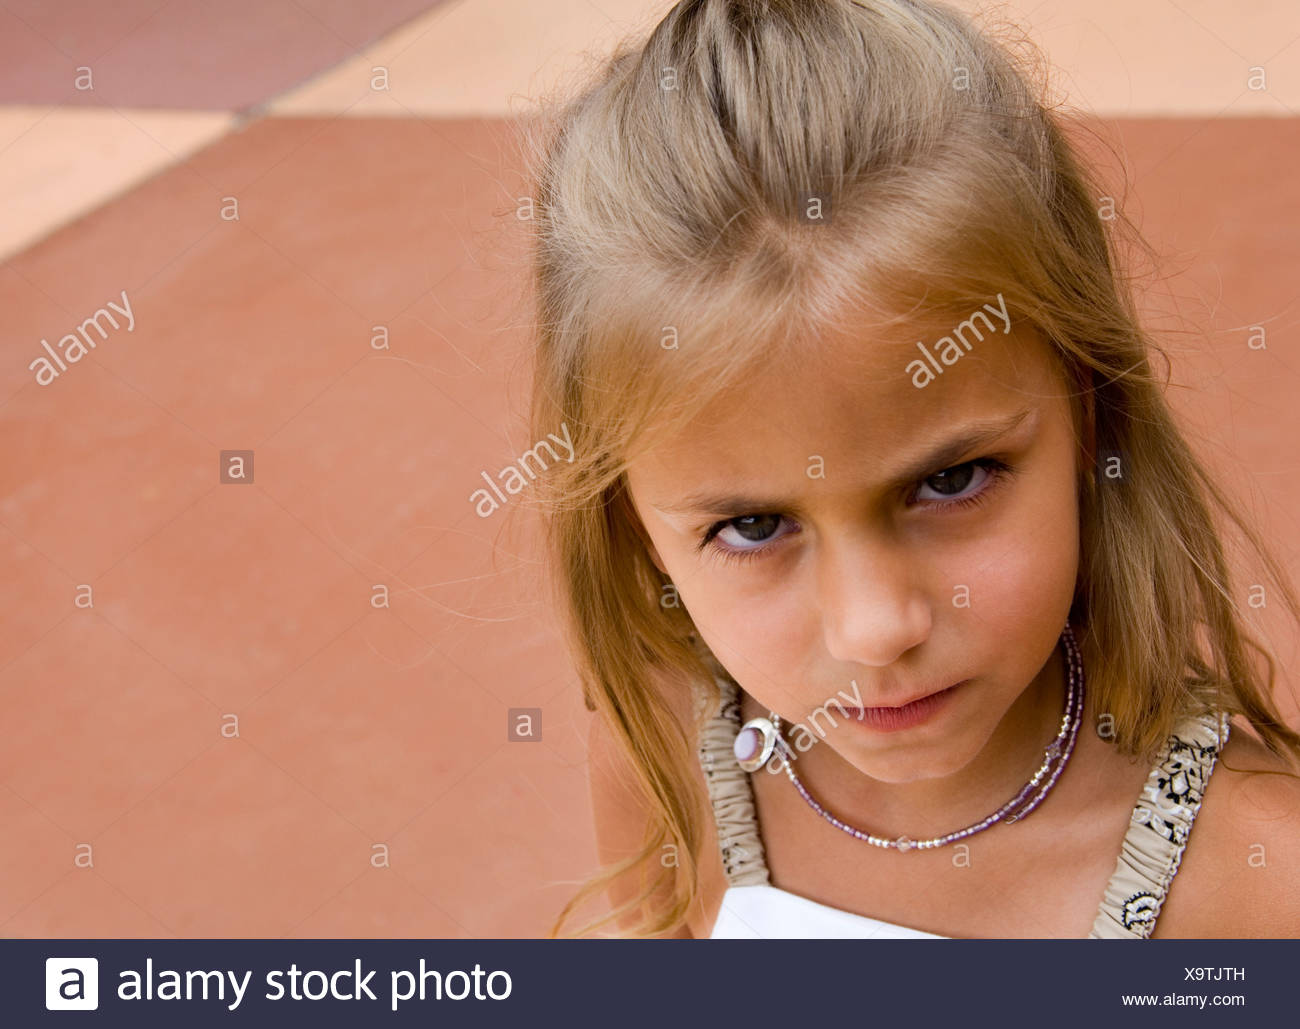 Young Scowling Girl - Stock Image